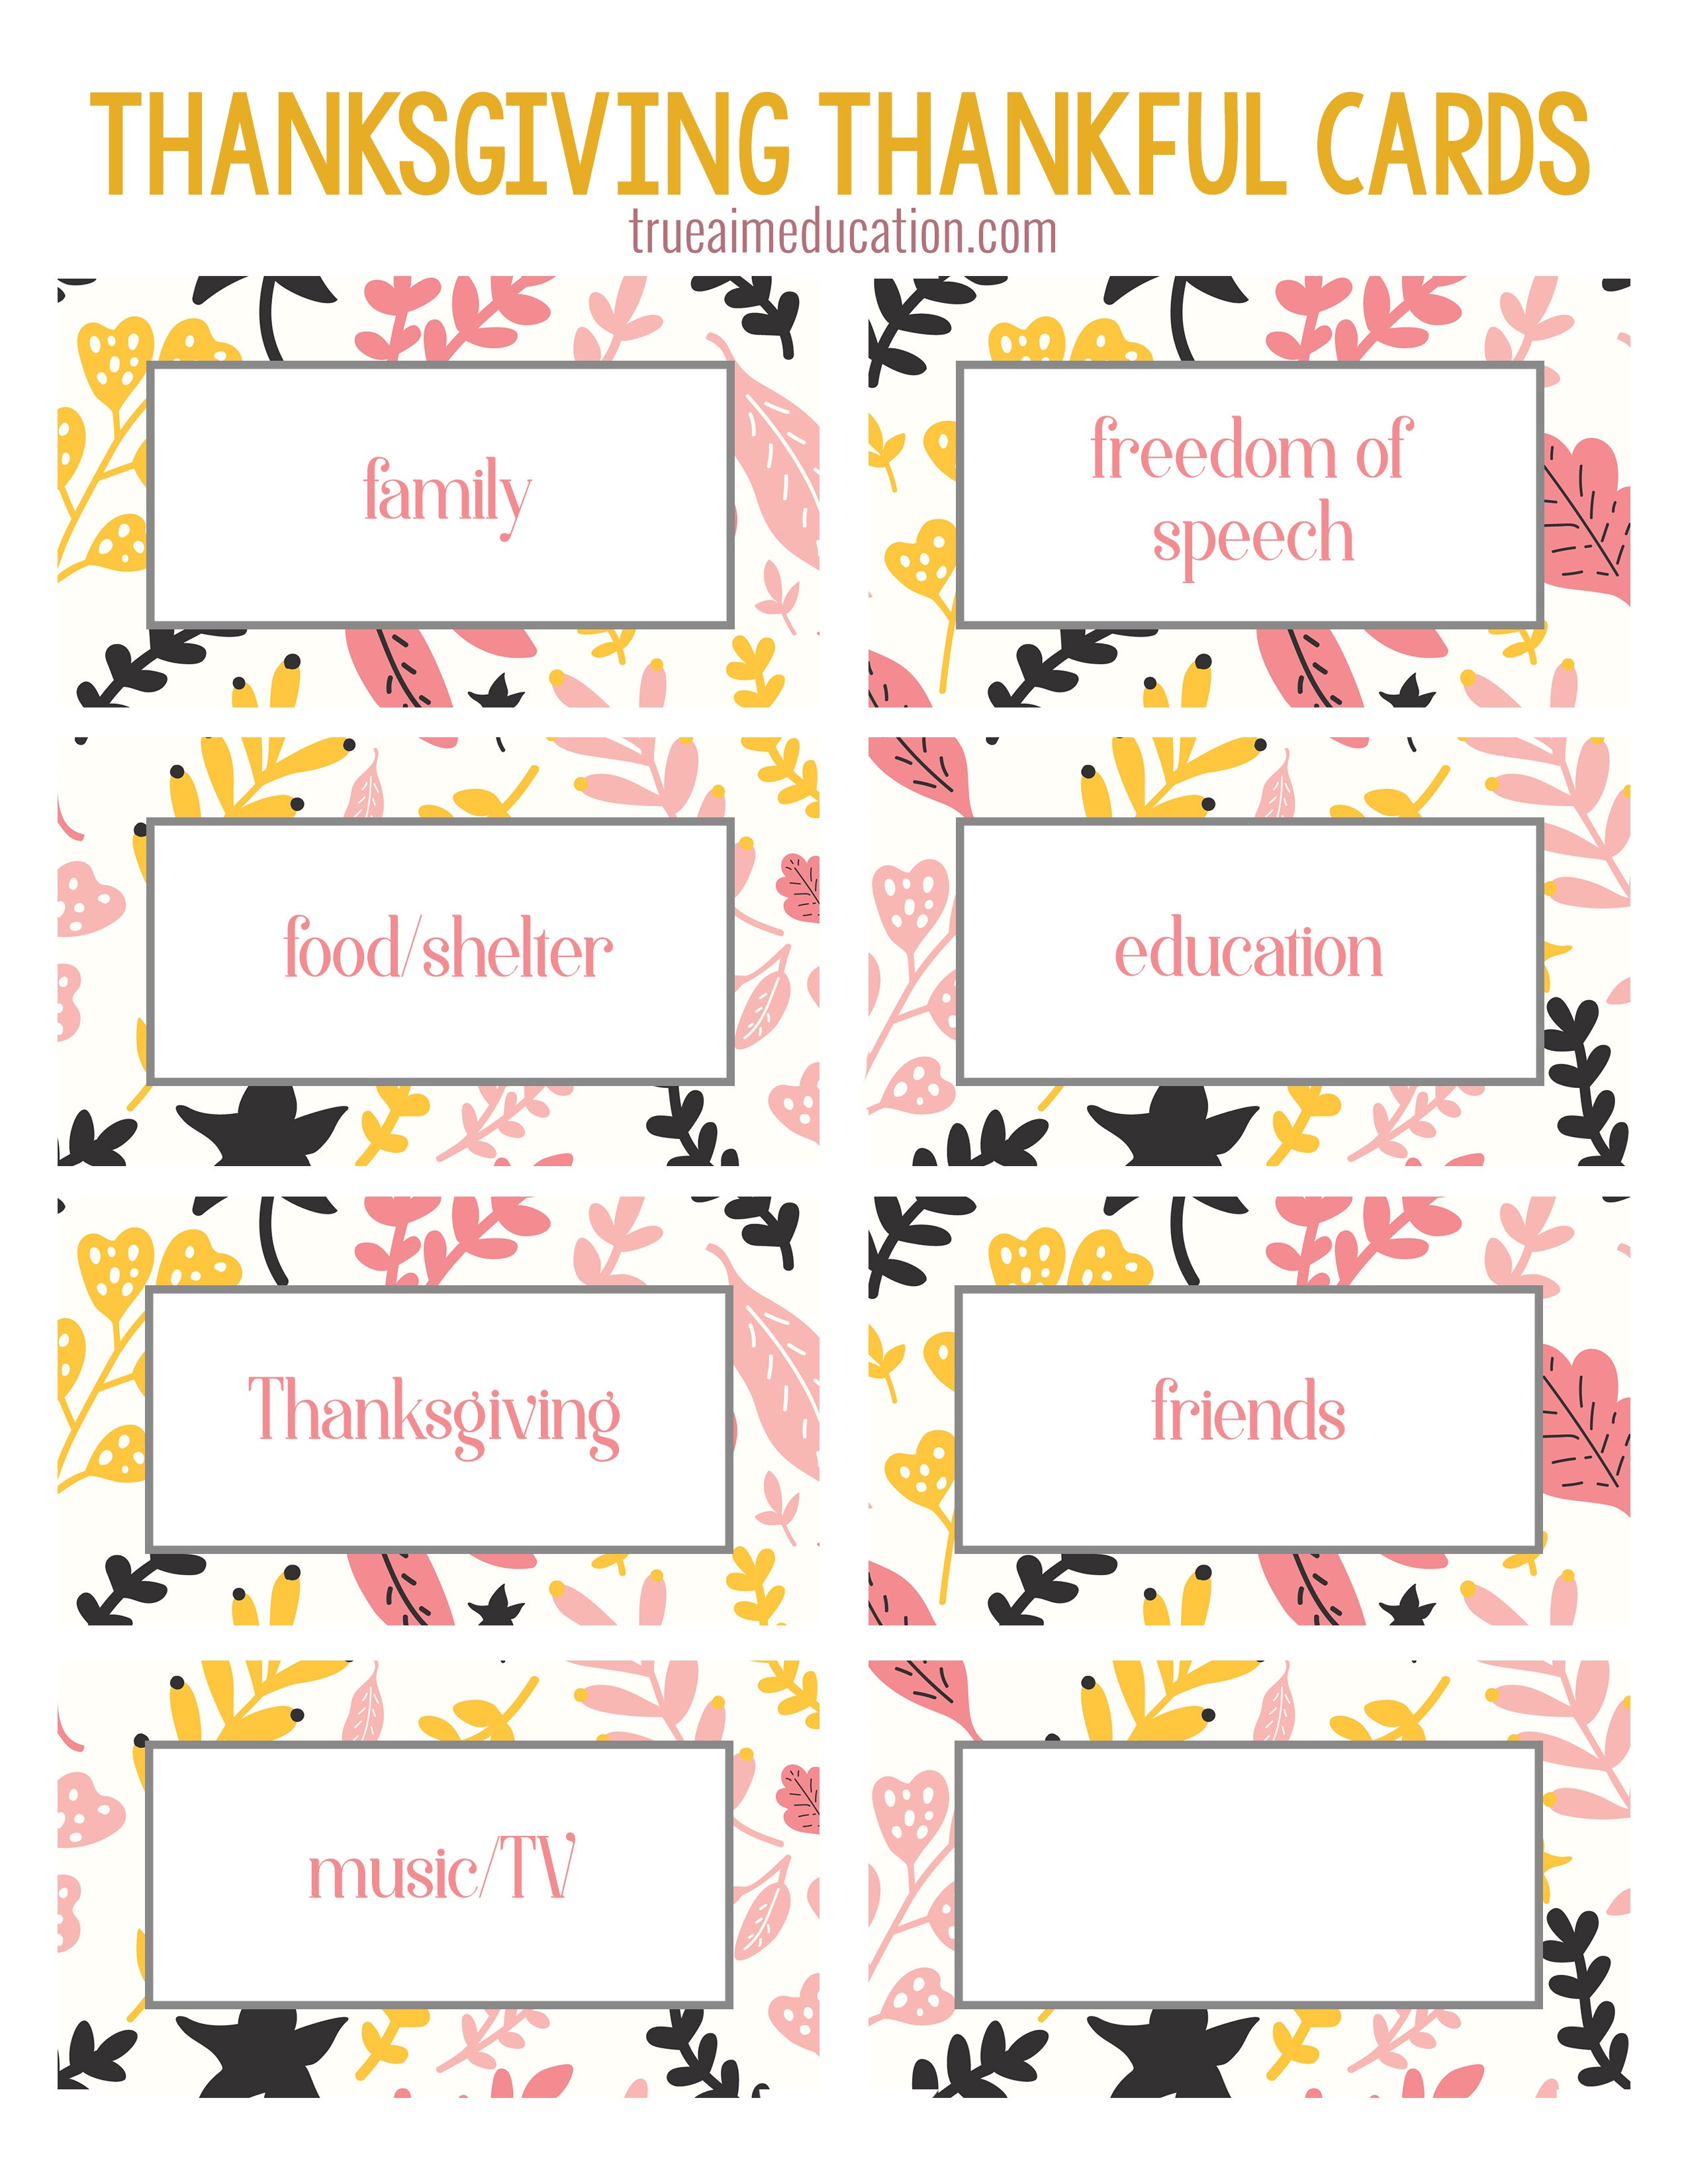 Thanksgiving Thankfulness With Free Printable Cards - Free Printable Thanksgiving Cards